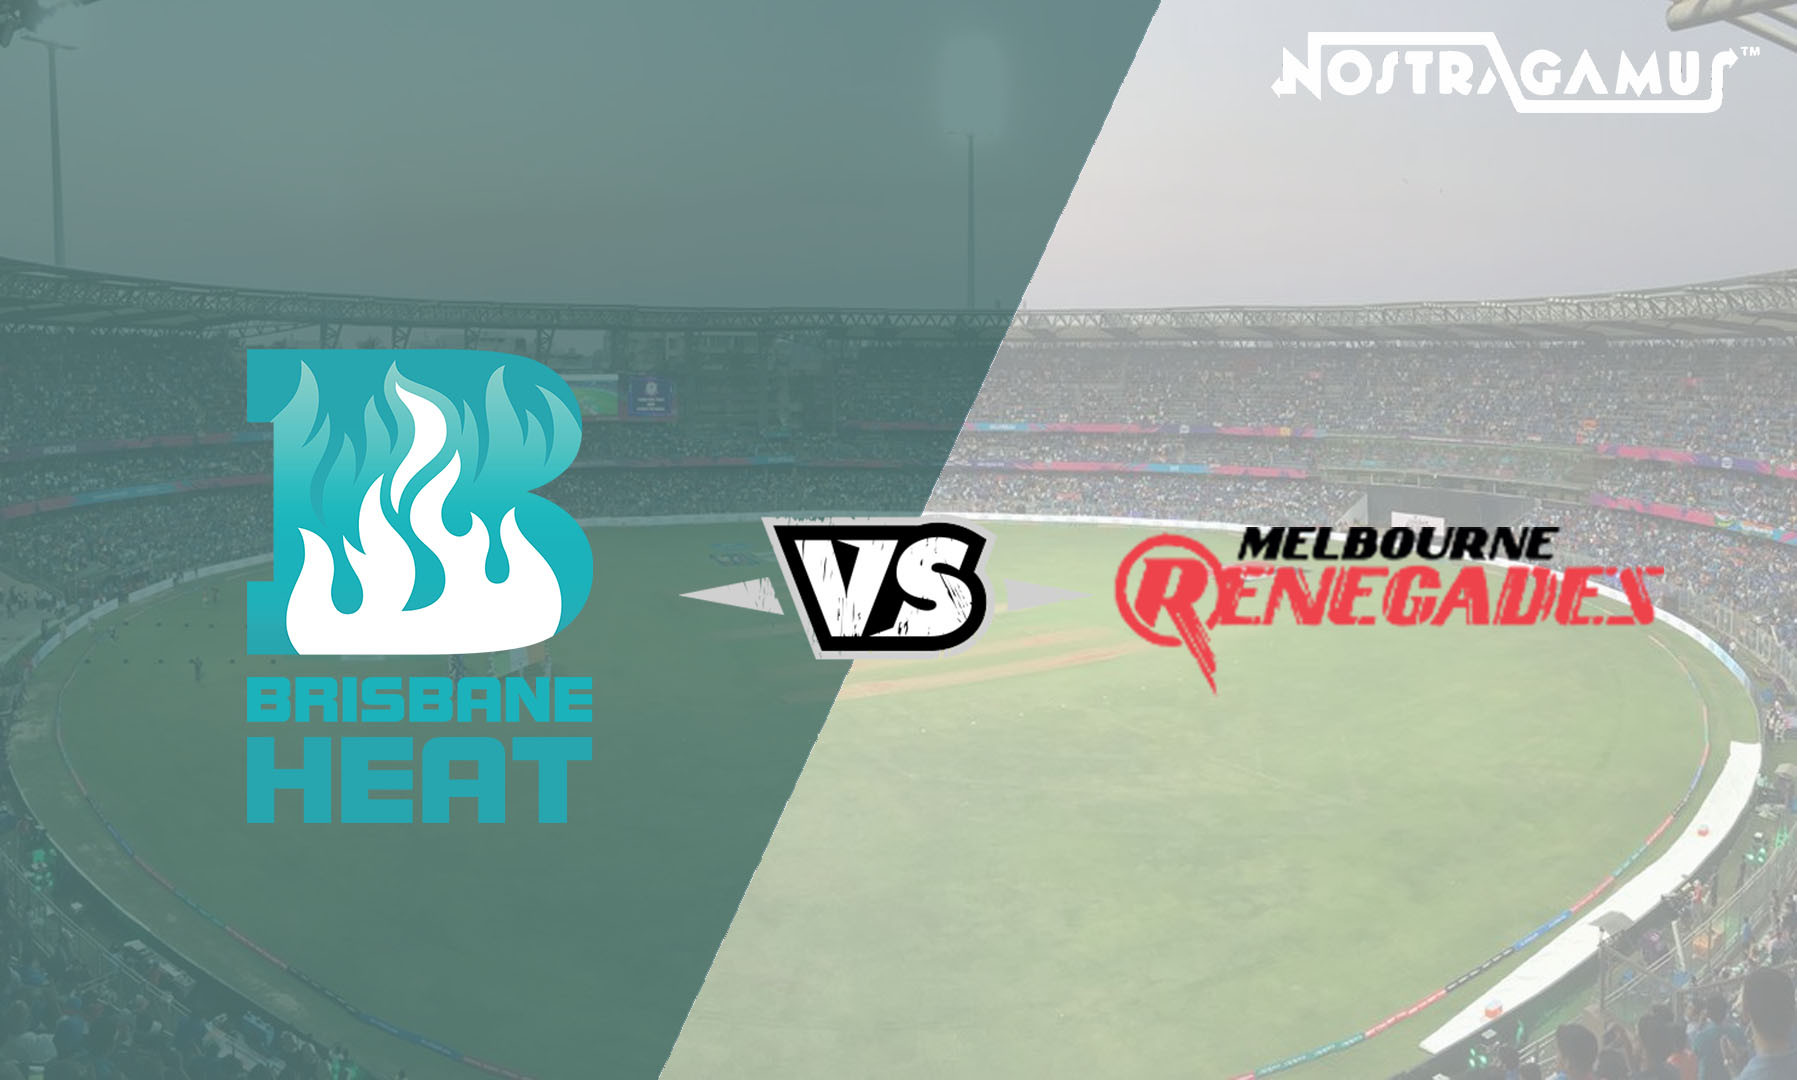 Big Bash League Predictions: Brisbane Heat vs Melbourne Renegades